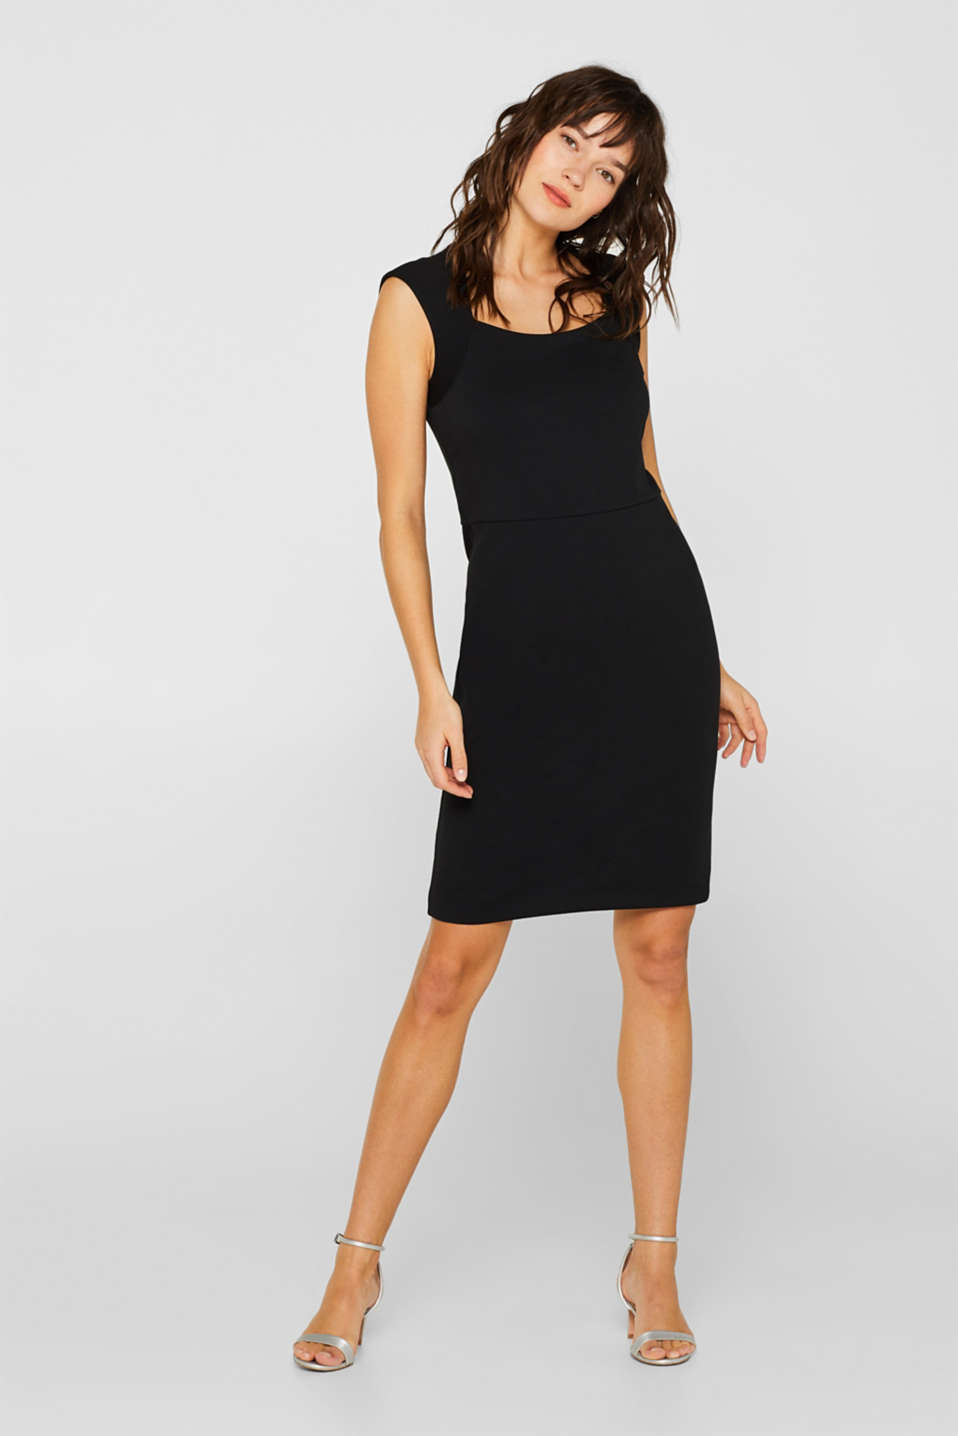 Esprit - Sheath dress in jersey with stretch for comfort